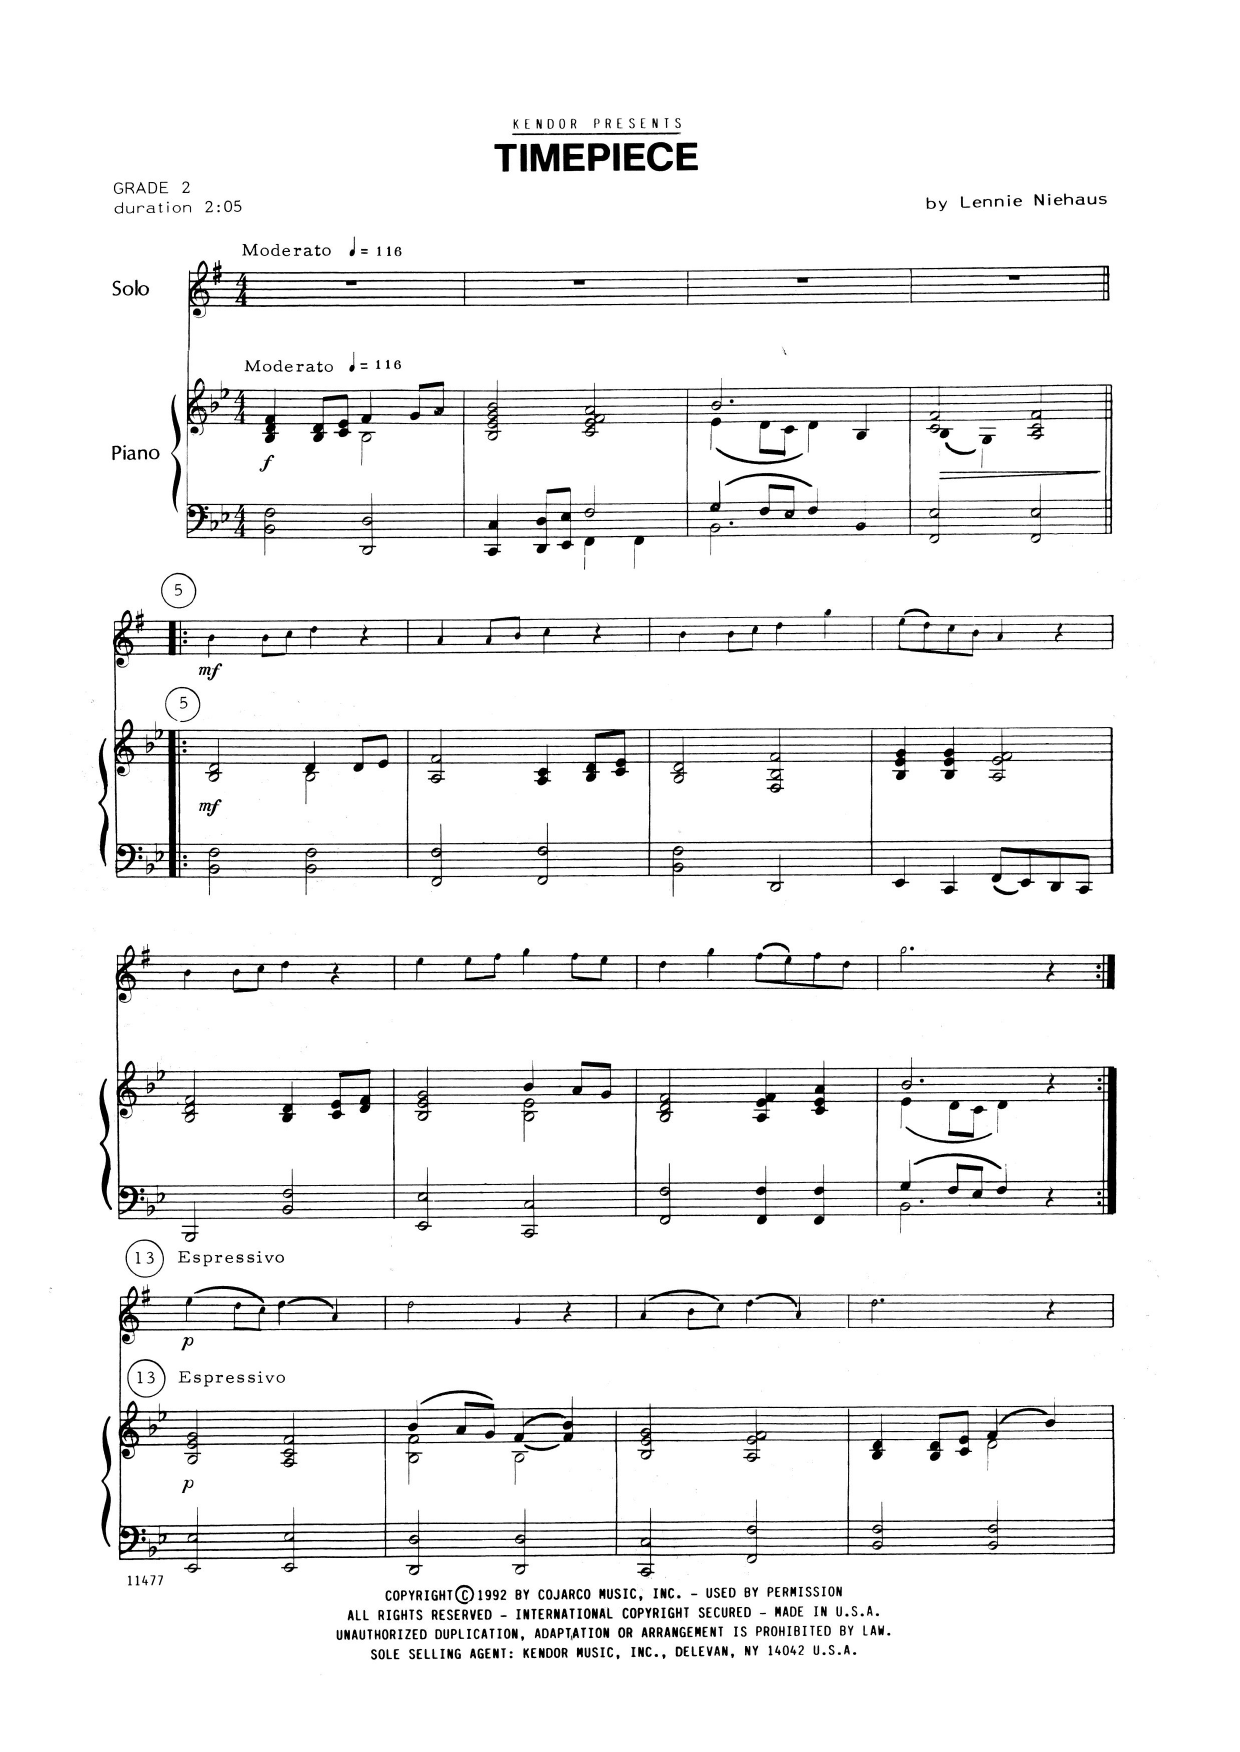 Lennie Niehaus Timepiece - Piano Accompaniment sheet music notes and chords. Download Printable PDF.